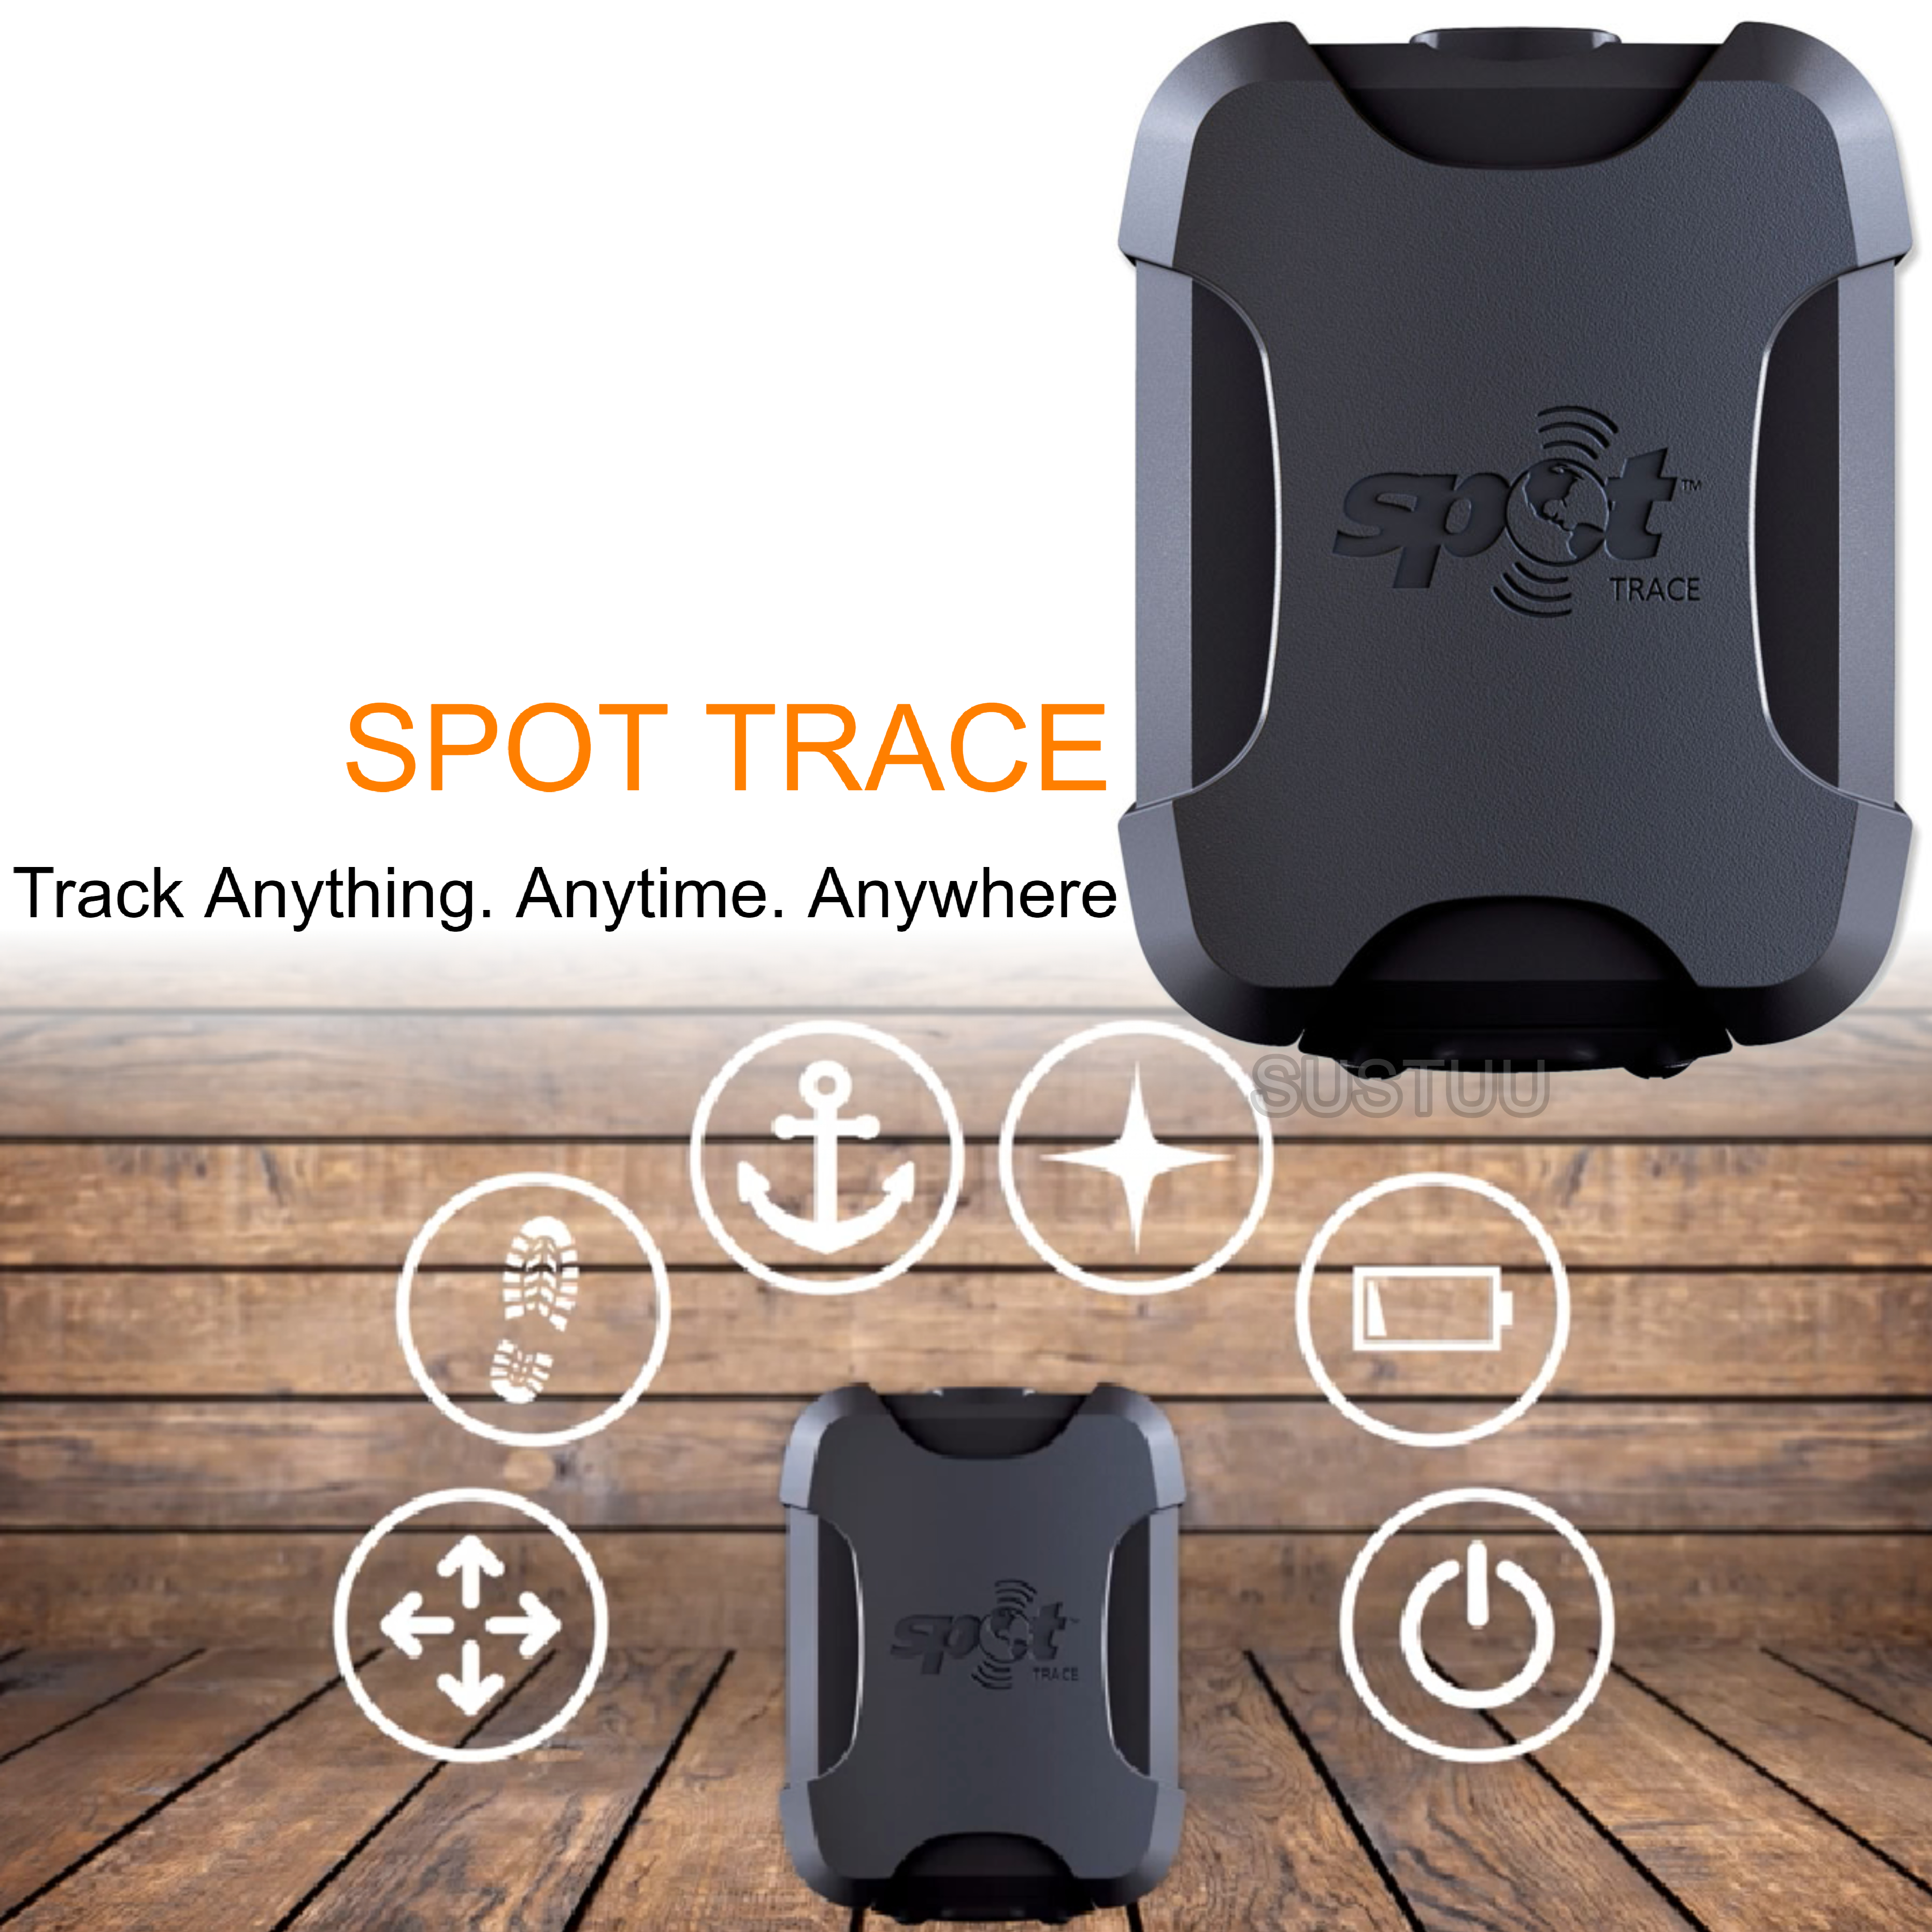 SPOT Trace|Boat Tracking|IPX7Waterproof|Anti Theft System|Asset Locator|Detector